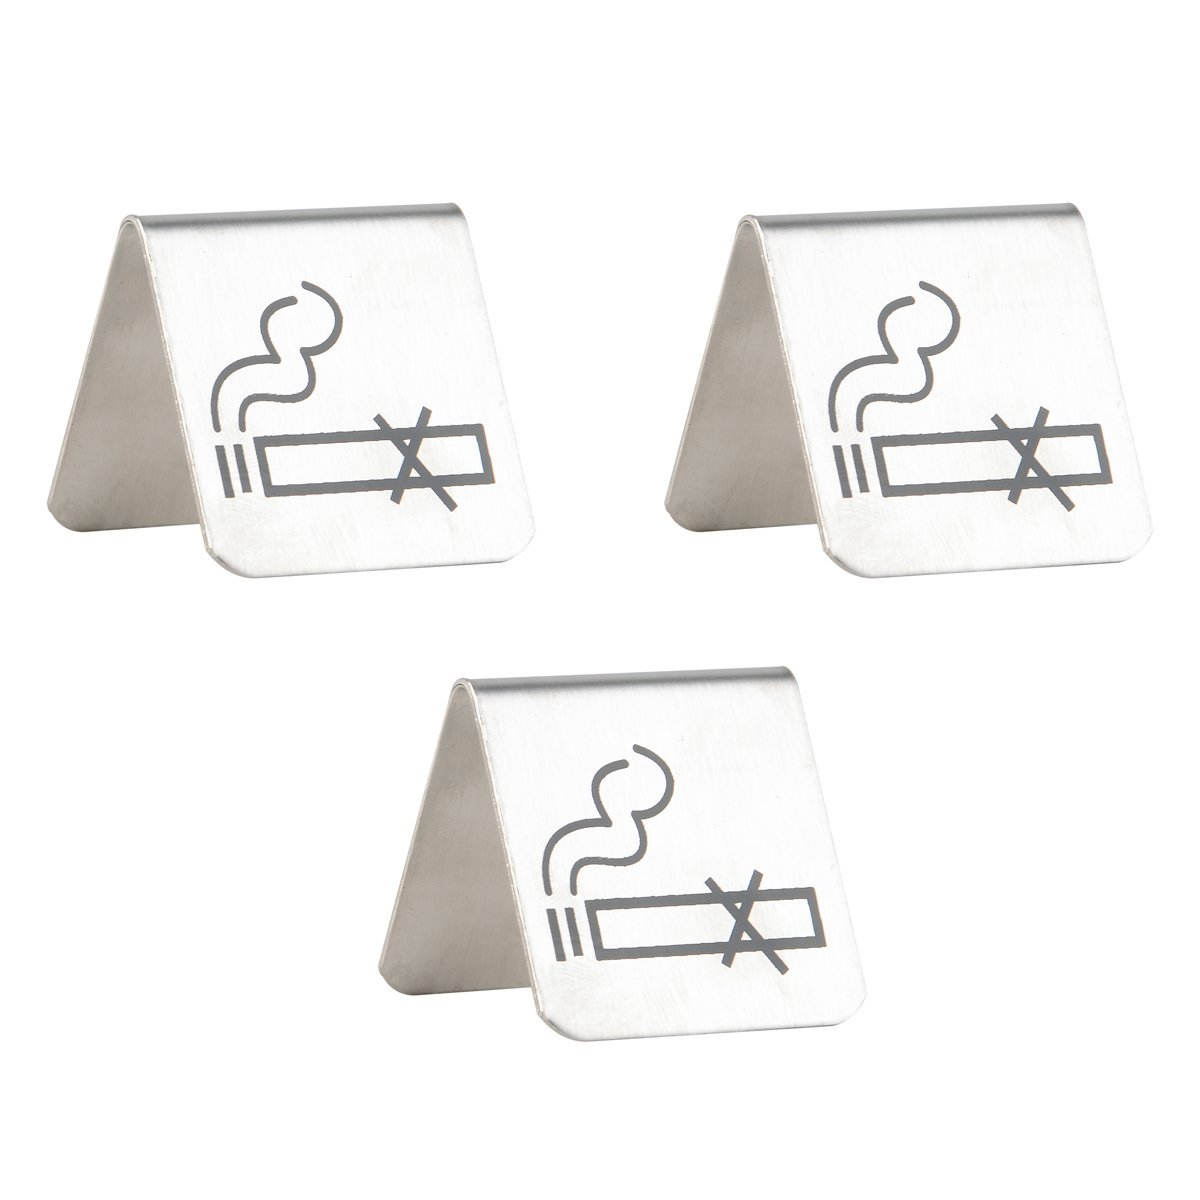 2 By 2 Inch Double Sided No Smoking Sign Set of 3 Brushed Stainless Steel Free Standing Table Top Tent Compliance Signs